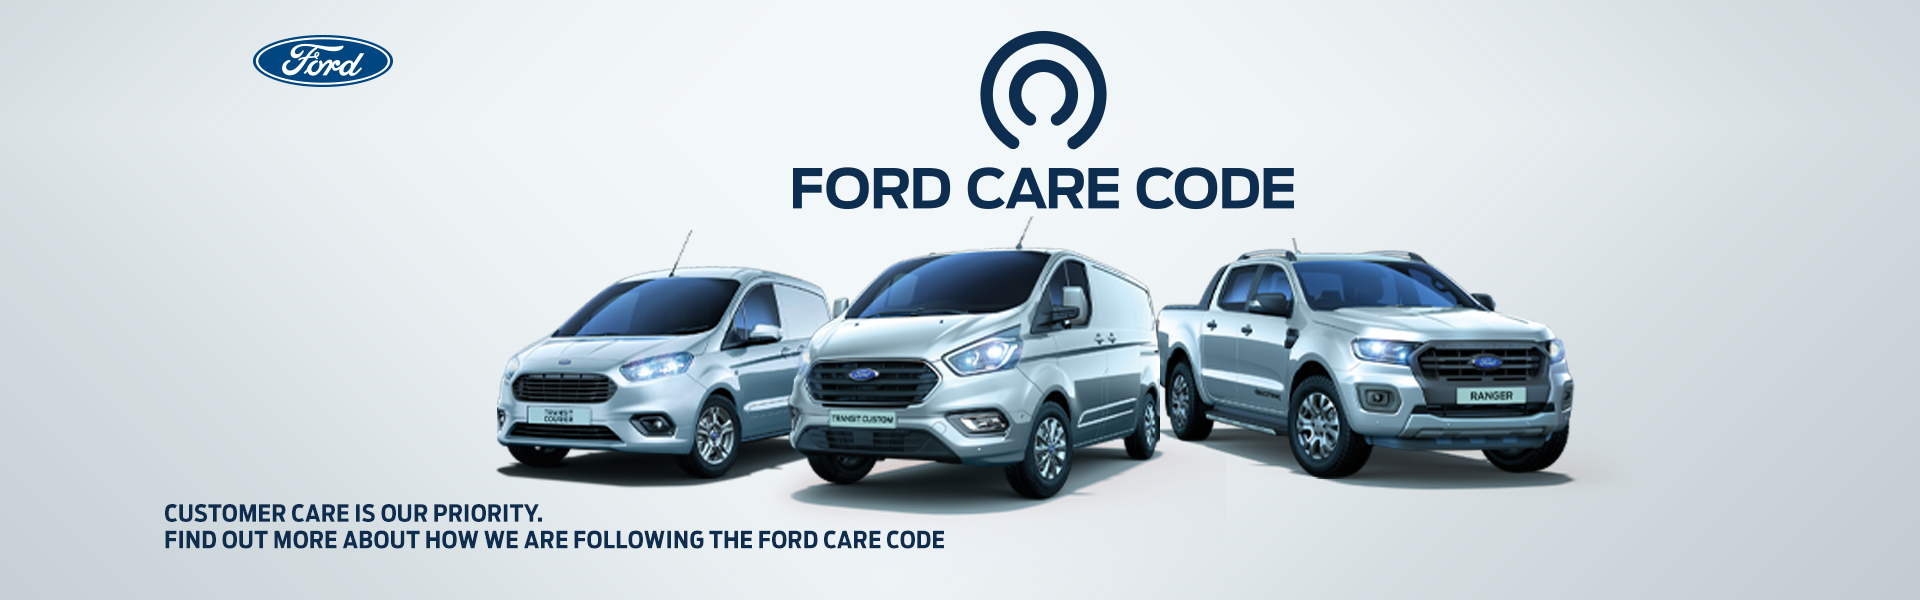 CV-Ford Care Code